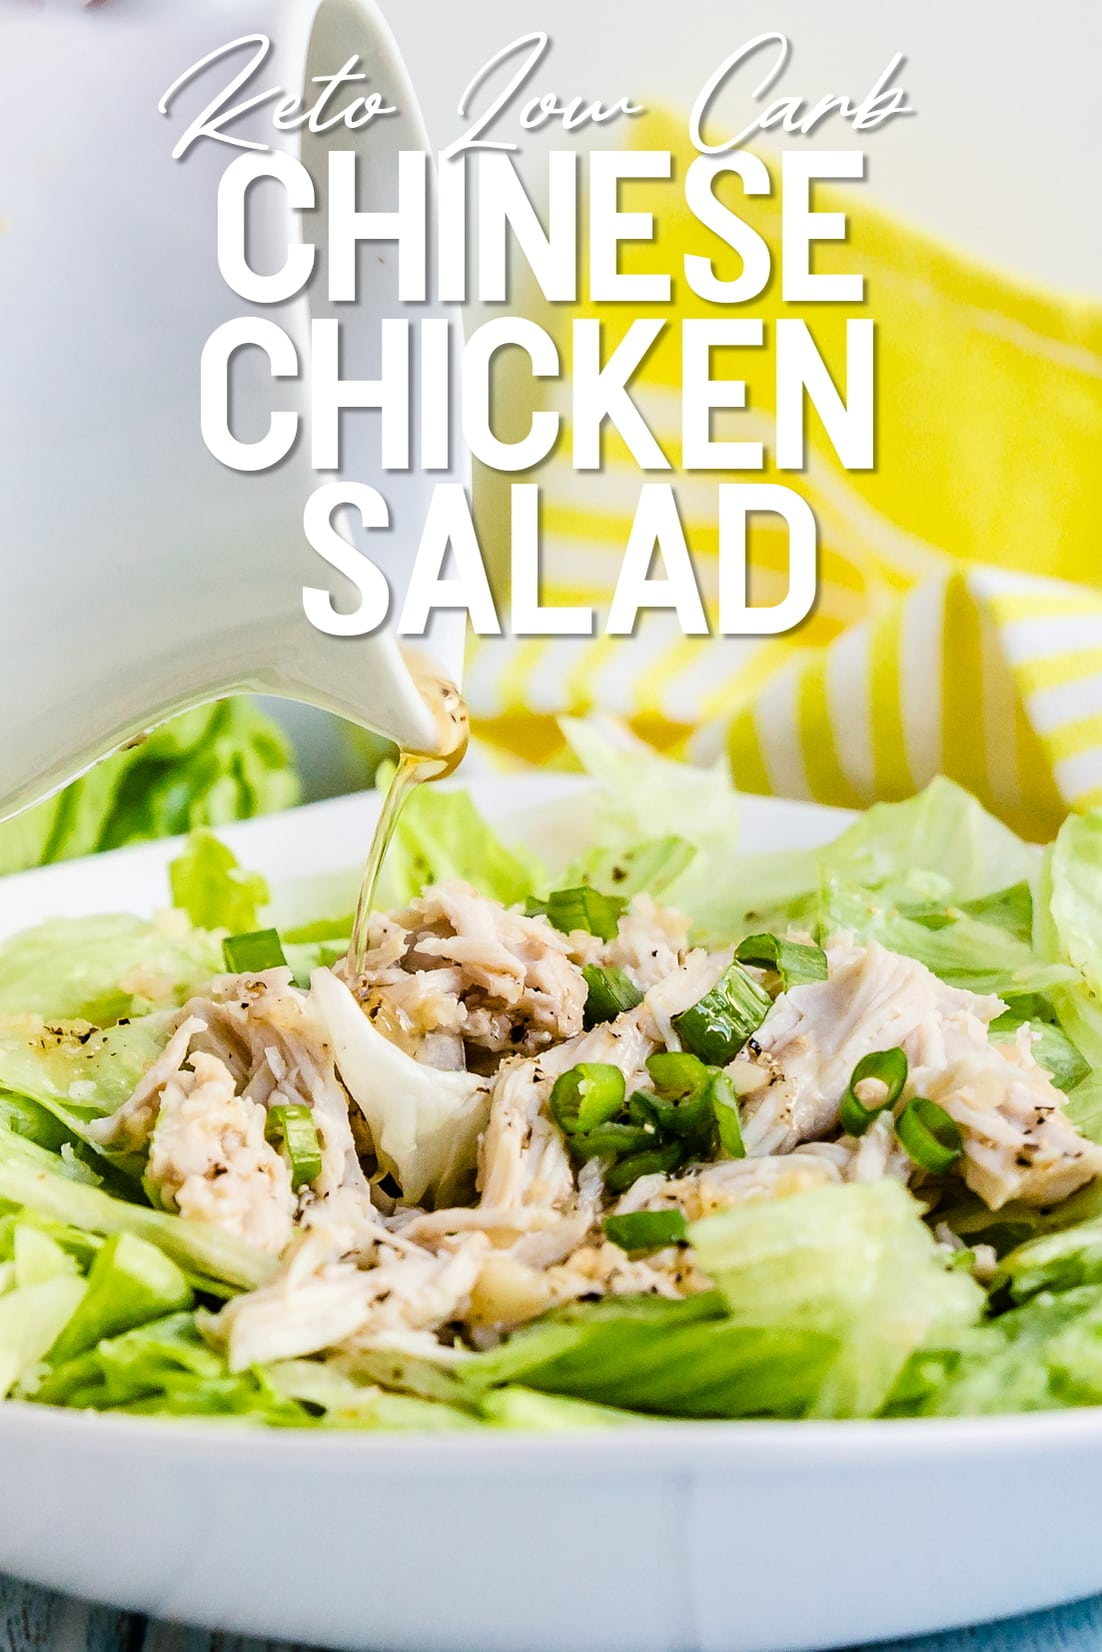 Chinese Chicken Salad with dressing being poured